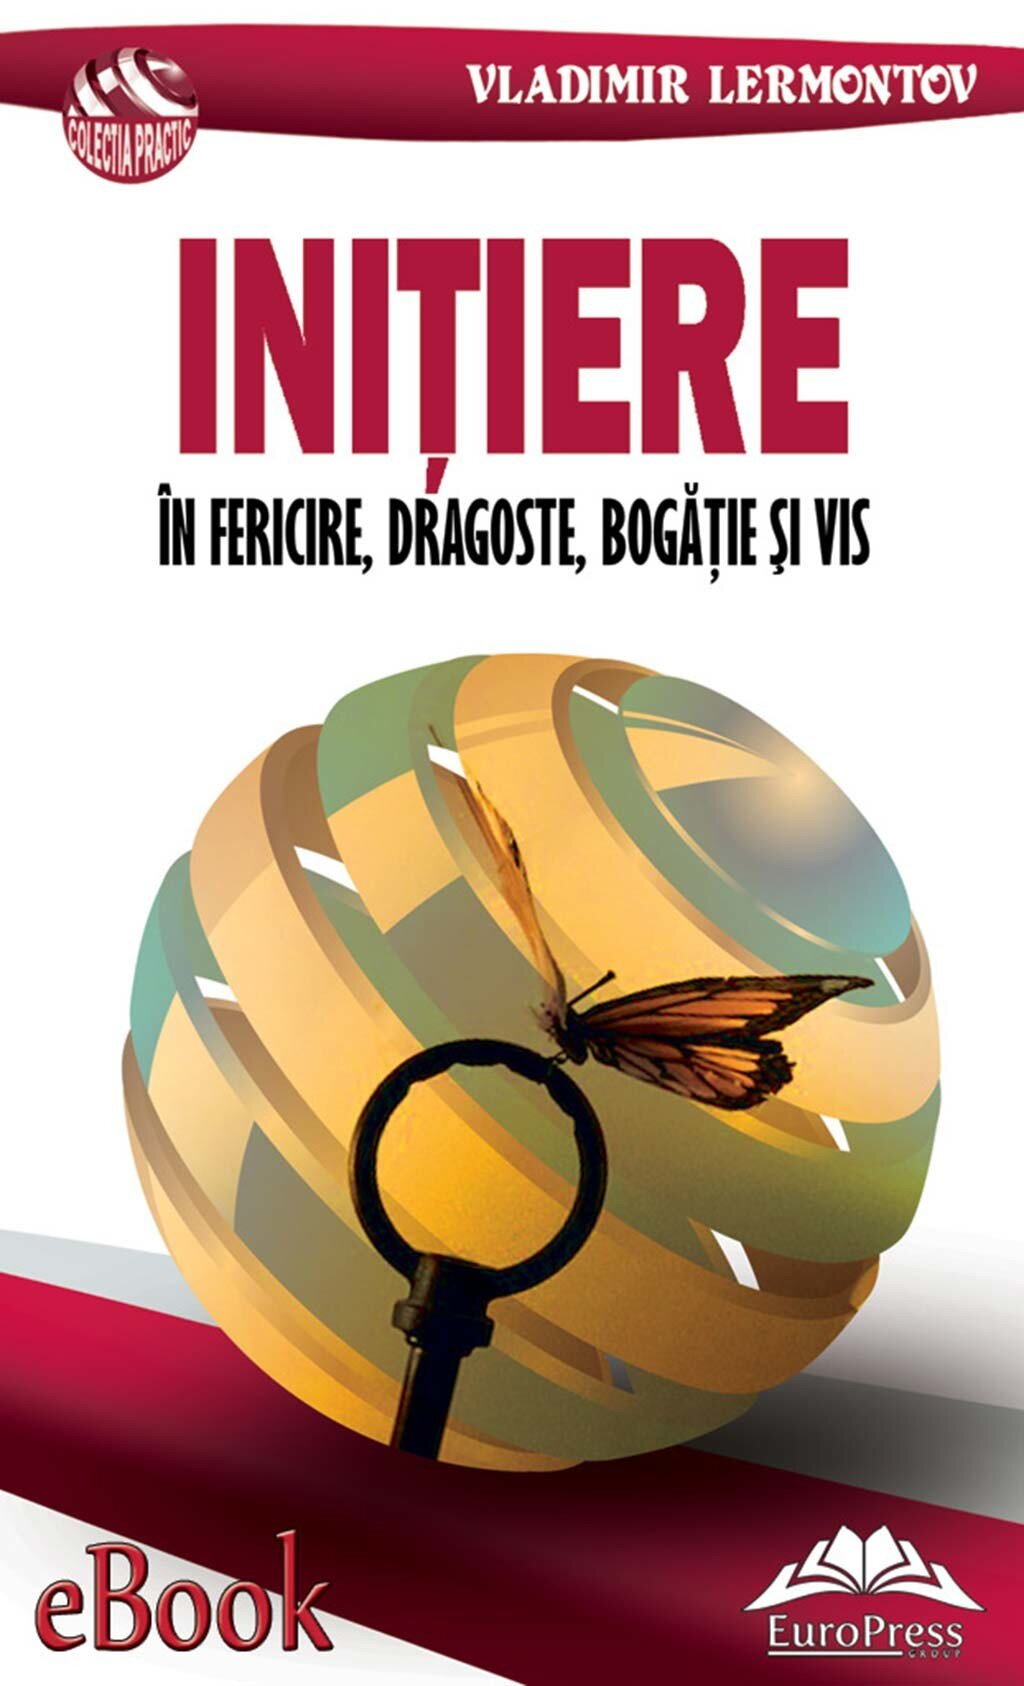 Initiere in fericire, dragoste, bogatie si vis PDF (Download eBook)